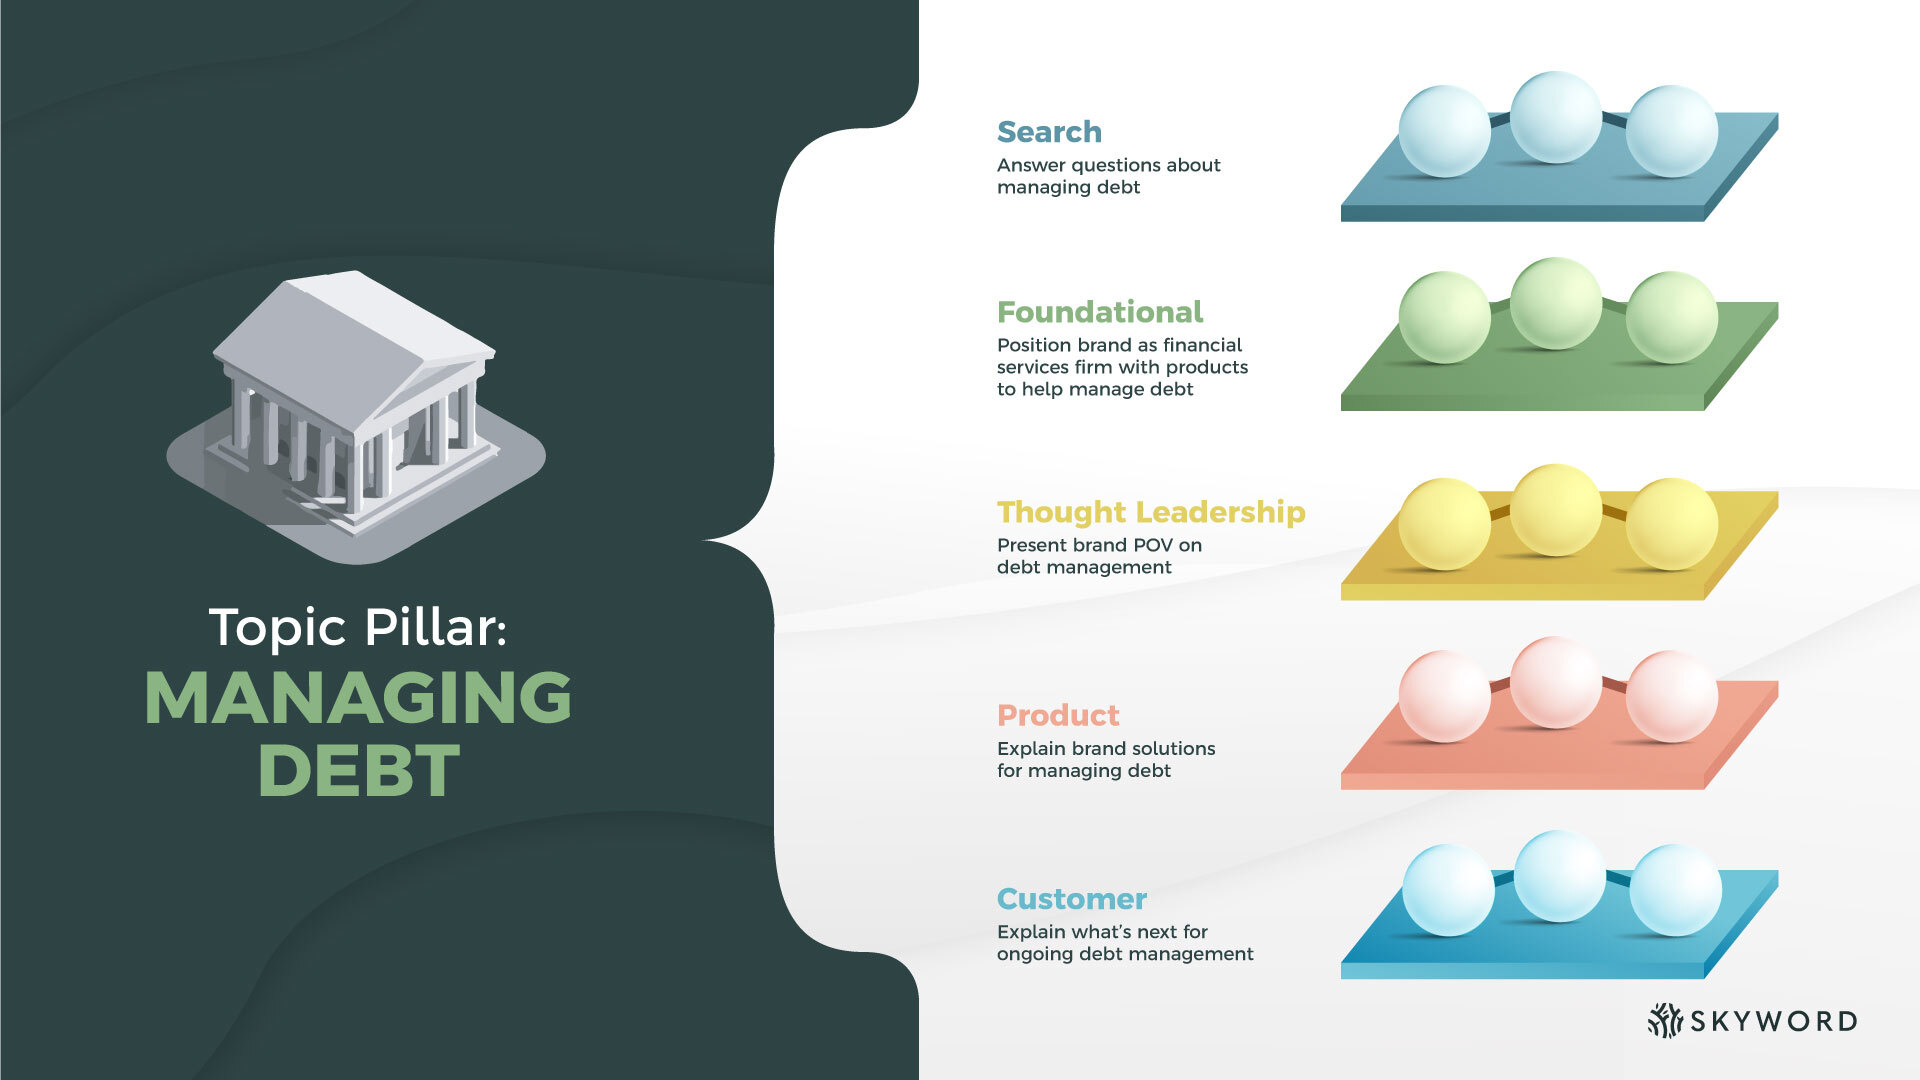 all content centers around a core set of content pillars